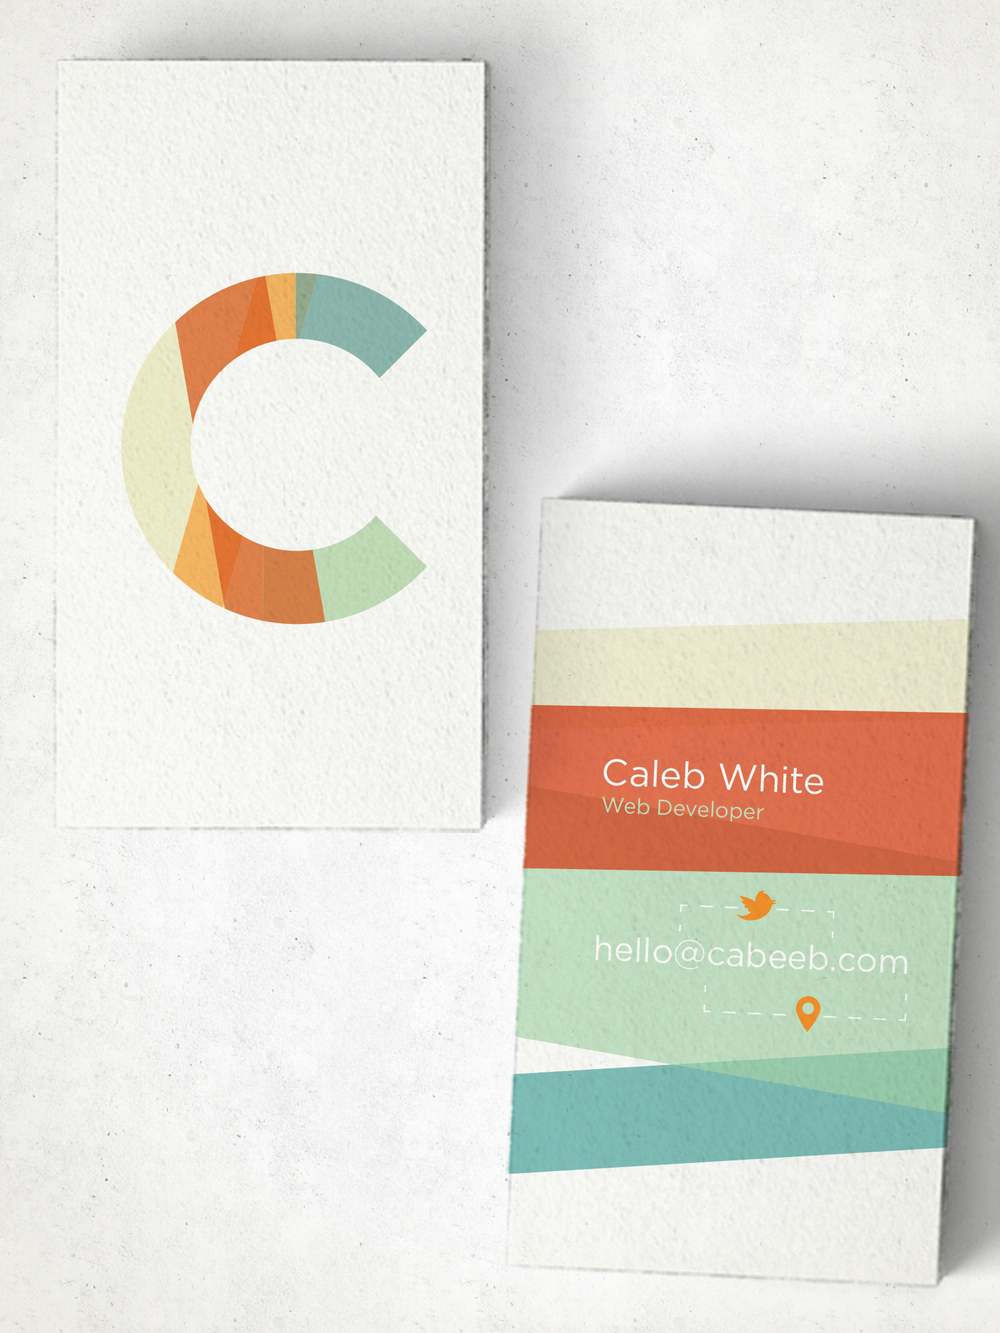 Cabeeb : Freelance web developer and designer, Caleb White.